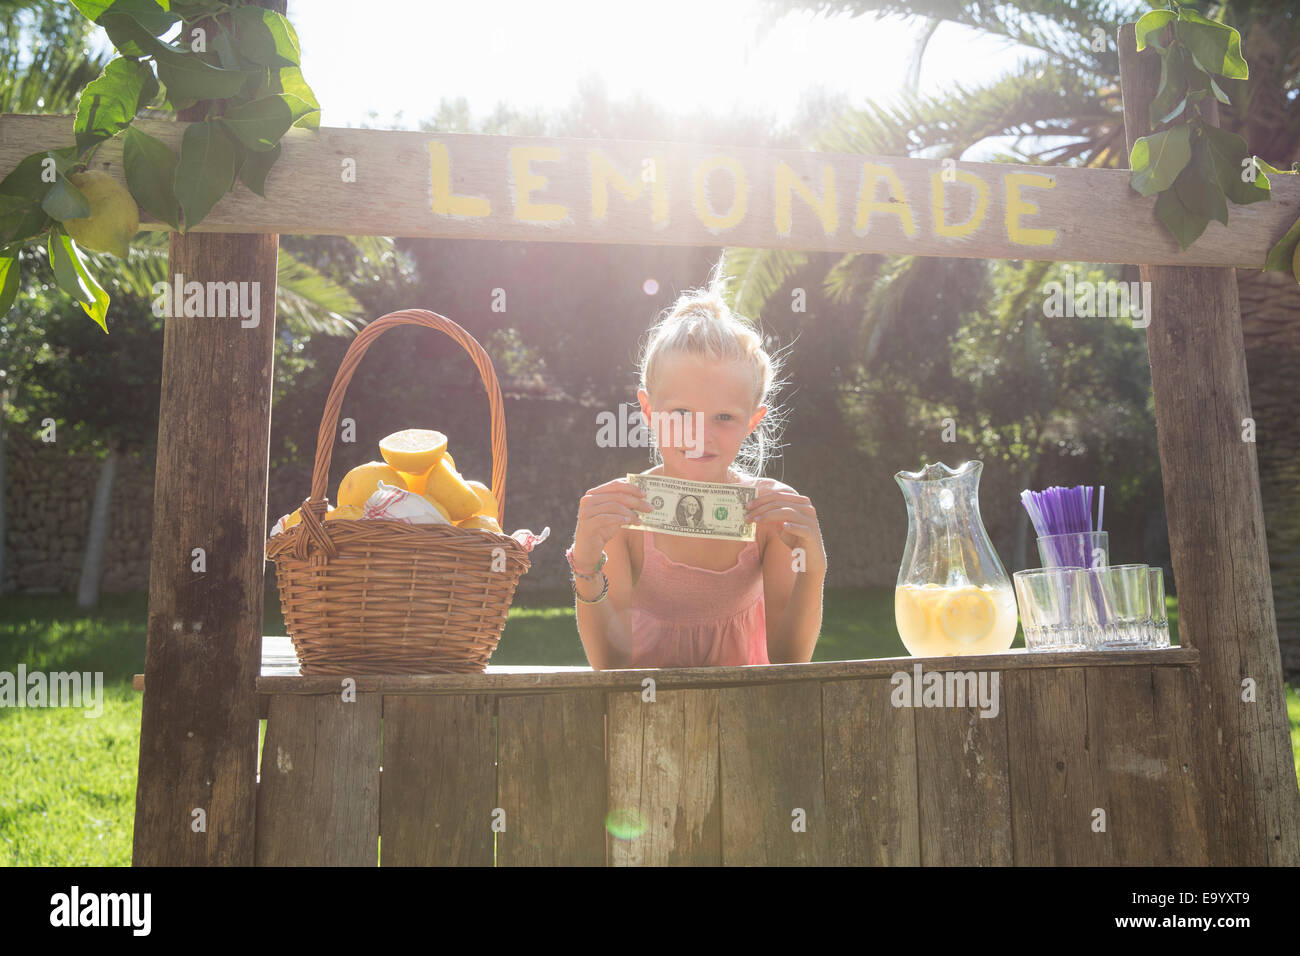 Portrait of girl on lemonade stand holding up one dollar bill - Stock Image